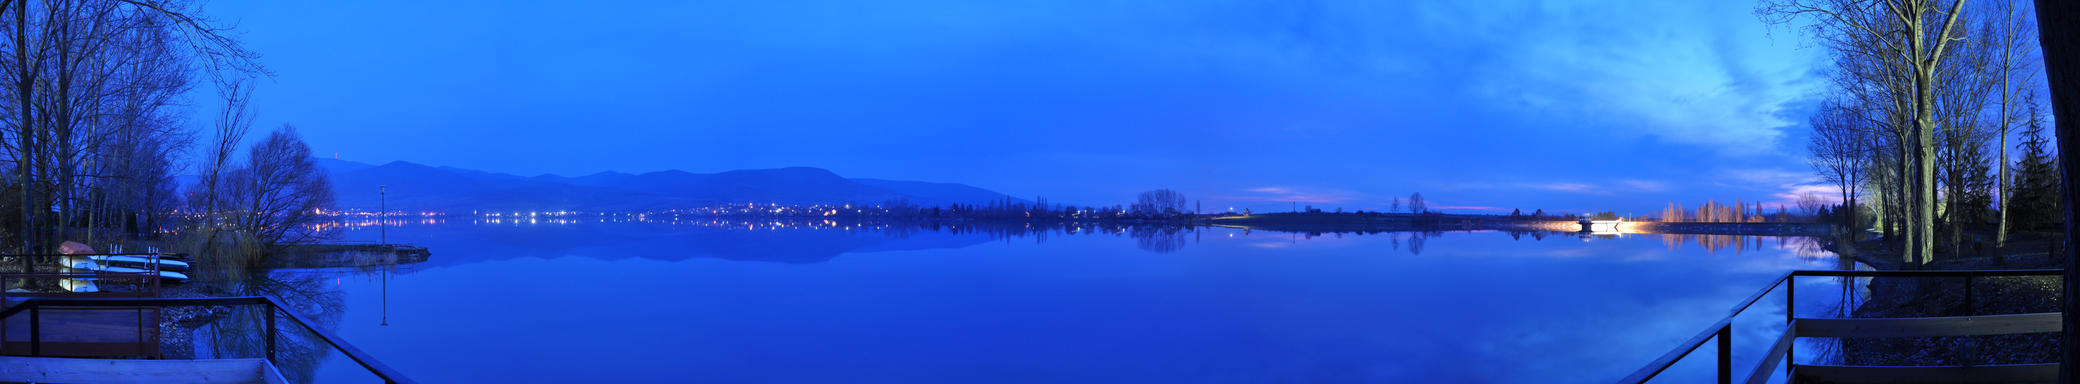 Lake Markaz by MetalGeri